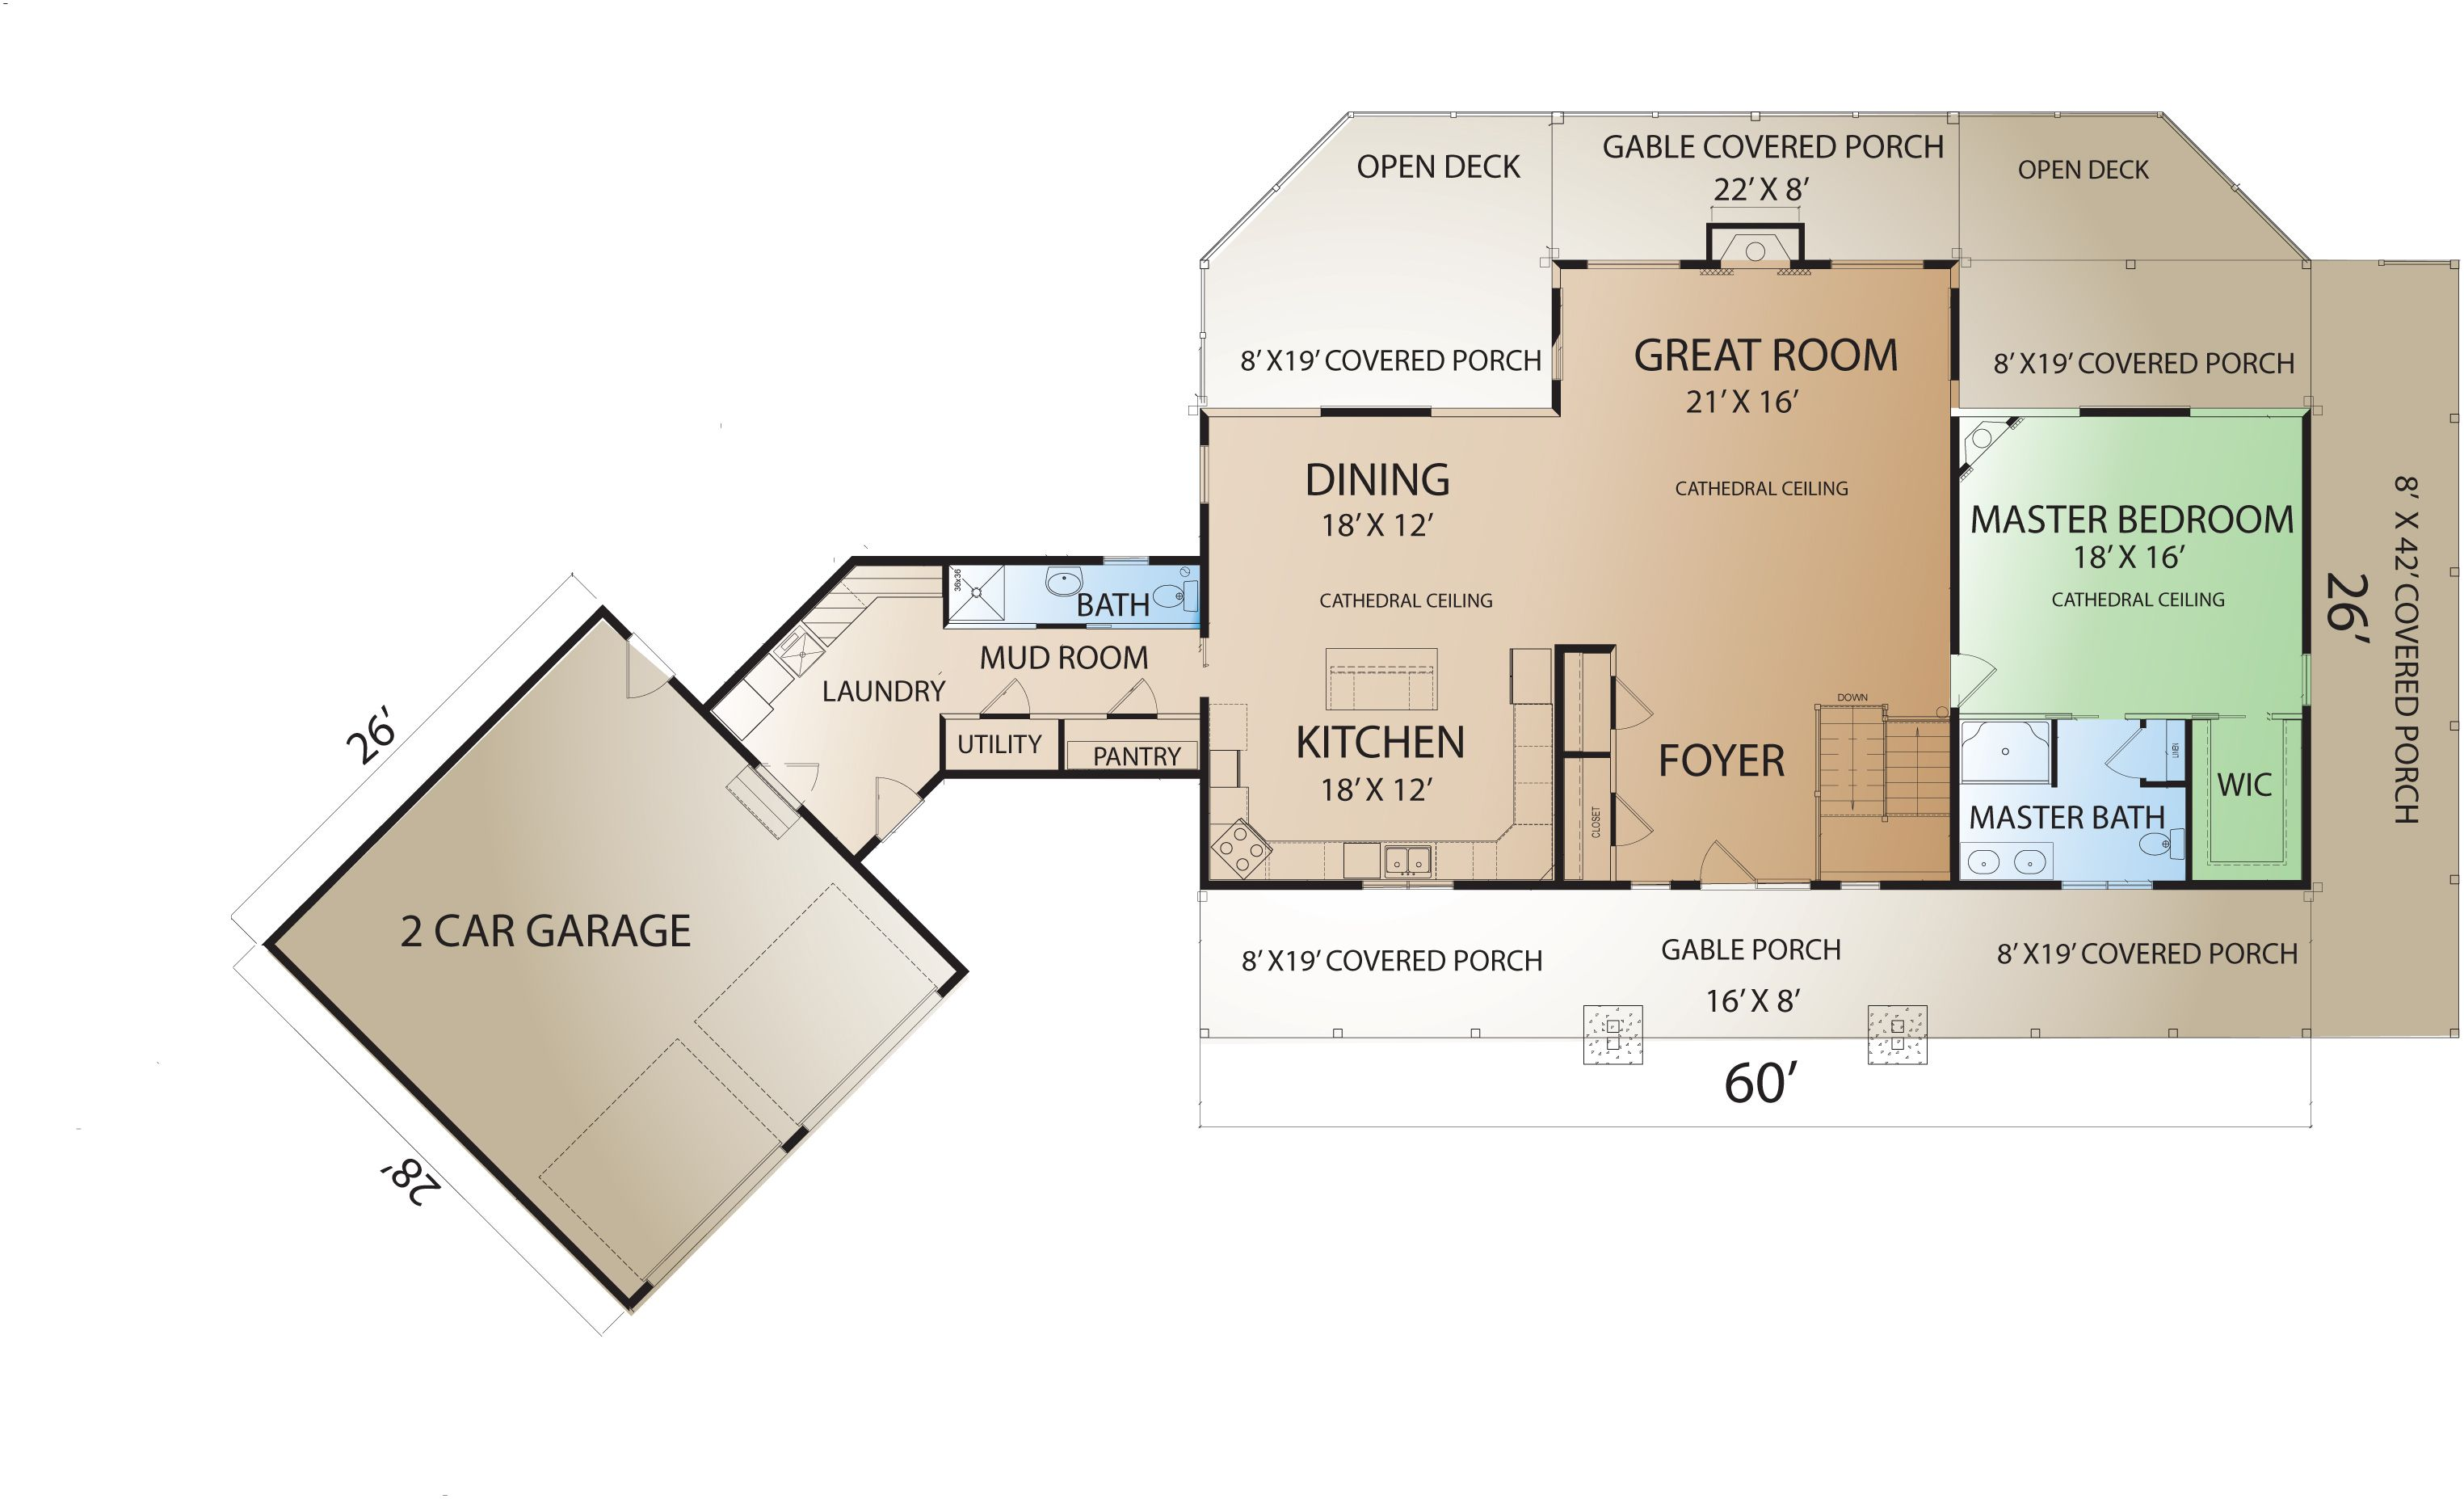 Floor plans attached garage countrymark prairieranch fp for Attached garage plans with breezeway